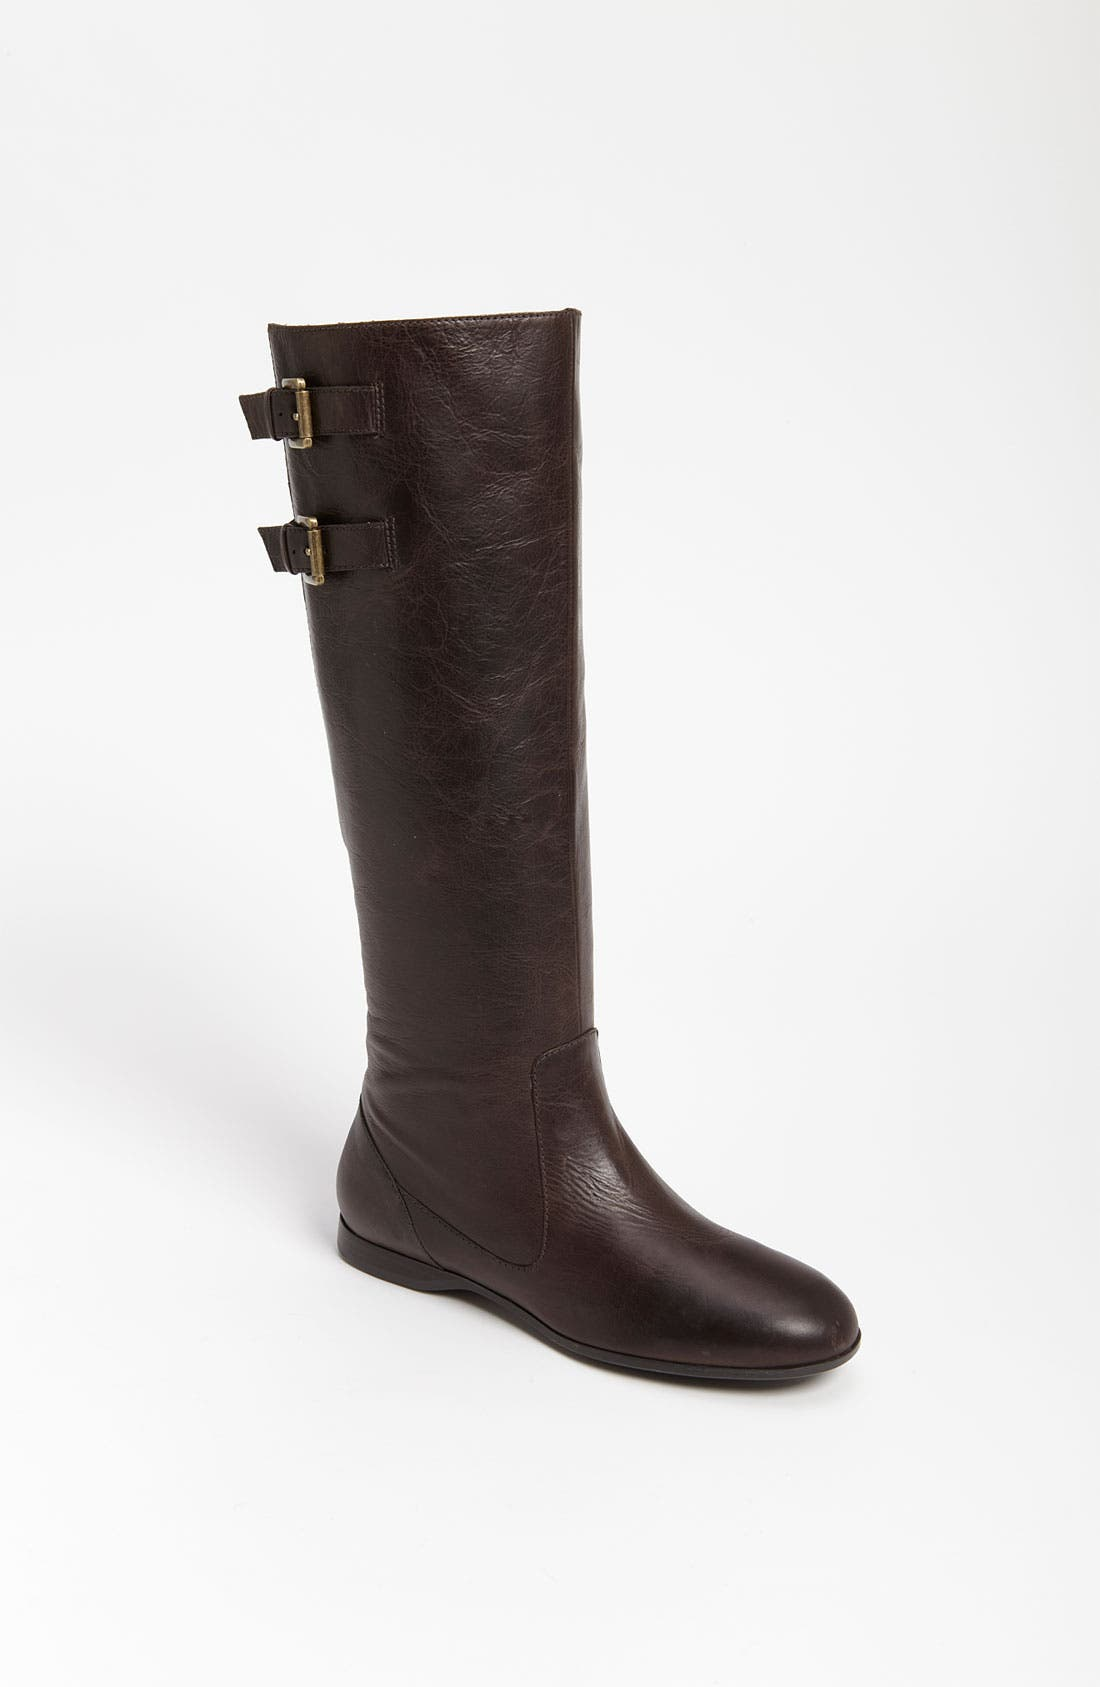 Alternate Image 1 Selected - Enzo Angiolini 'Zarynn' Riding Boot (Nordstrom Exclusive)